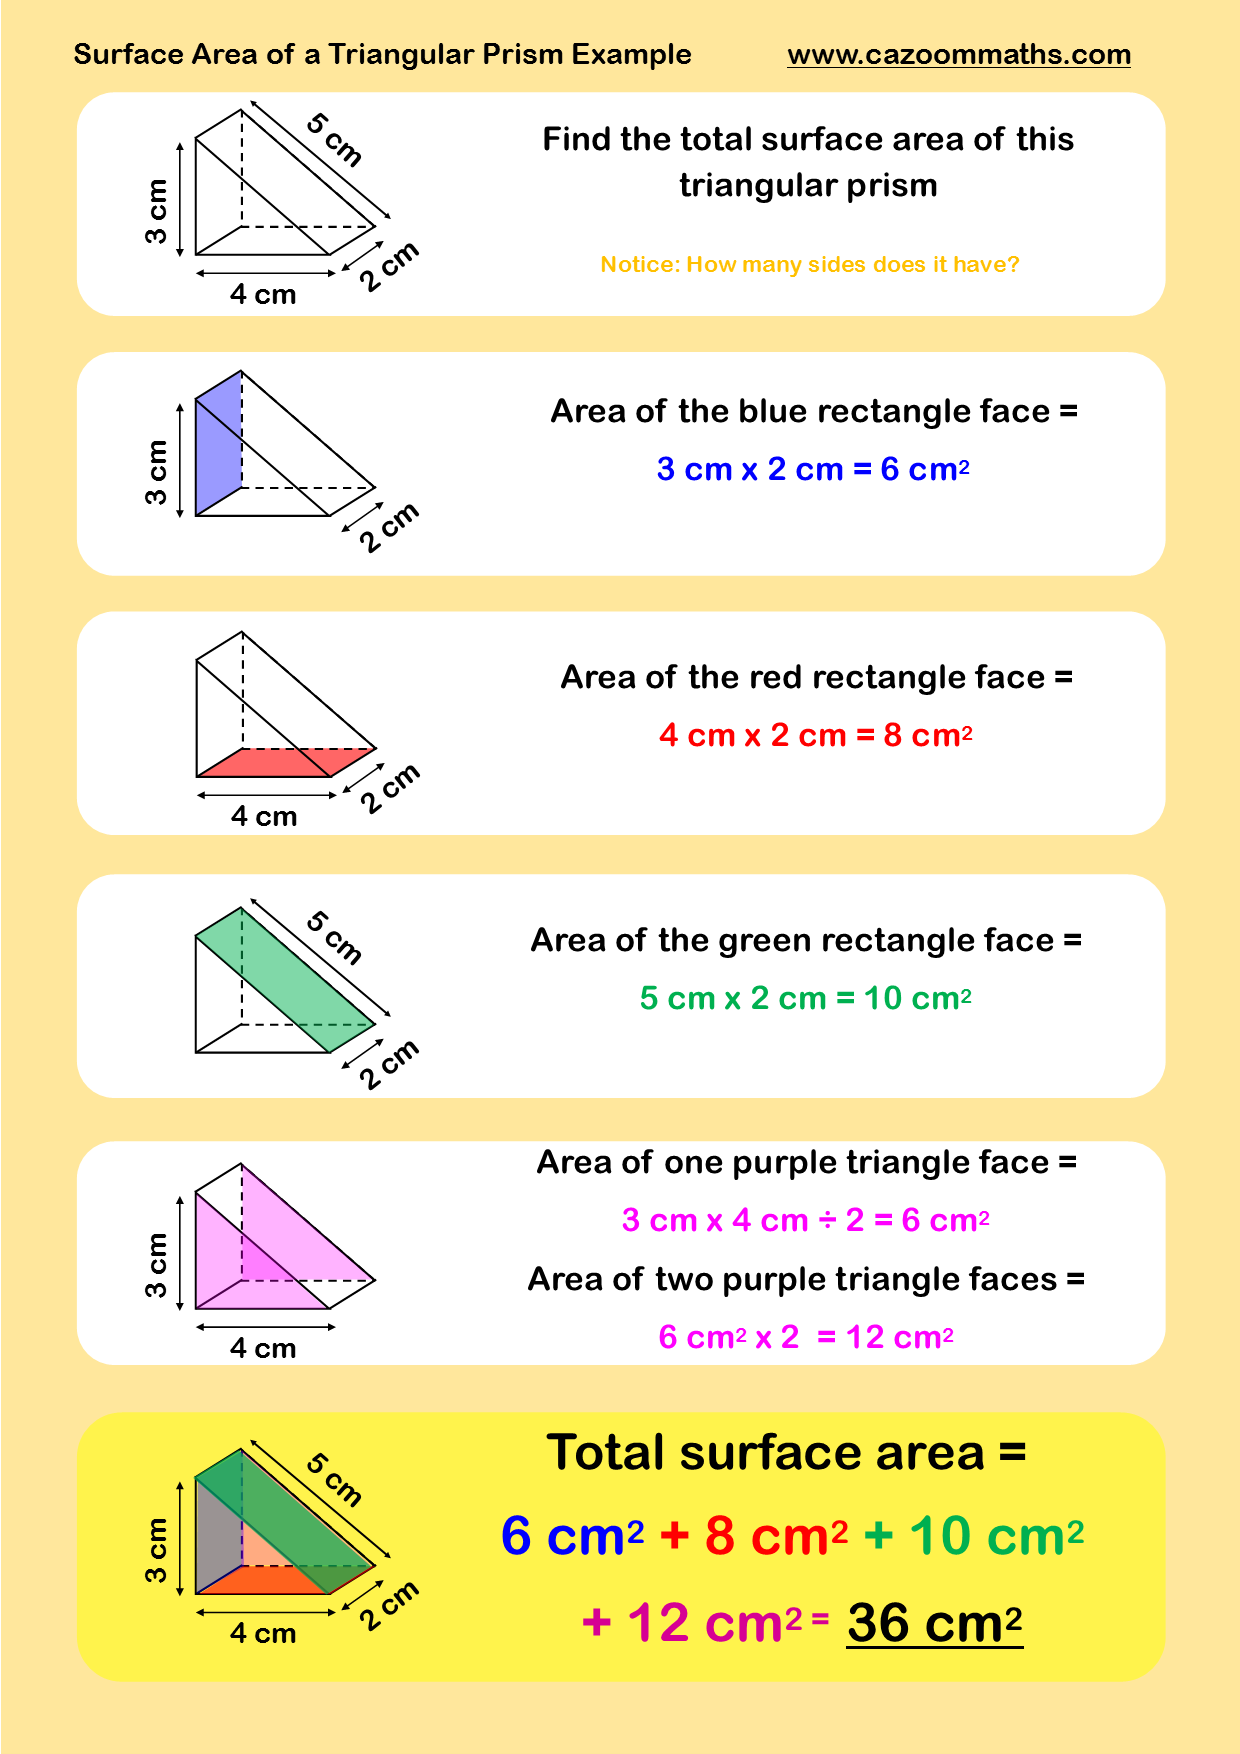 hight resolution of Surface Area of a Triangular Prism Example   Math practice worksheets